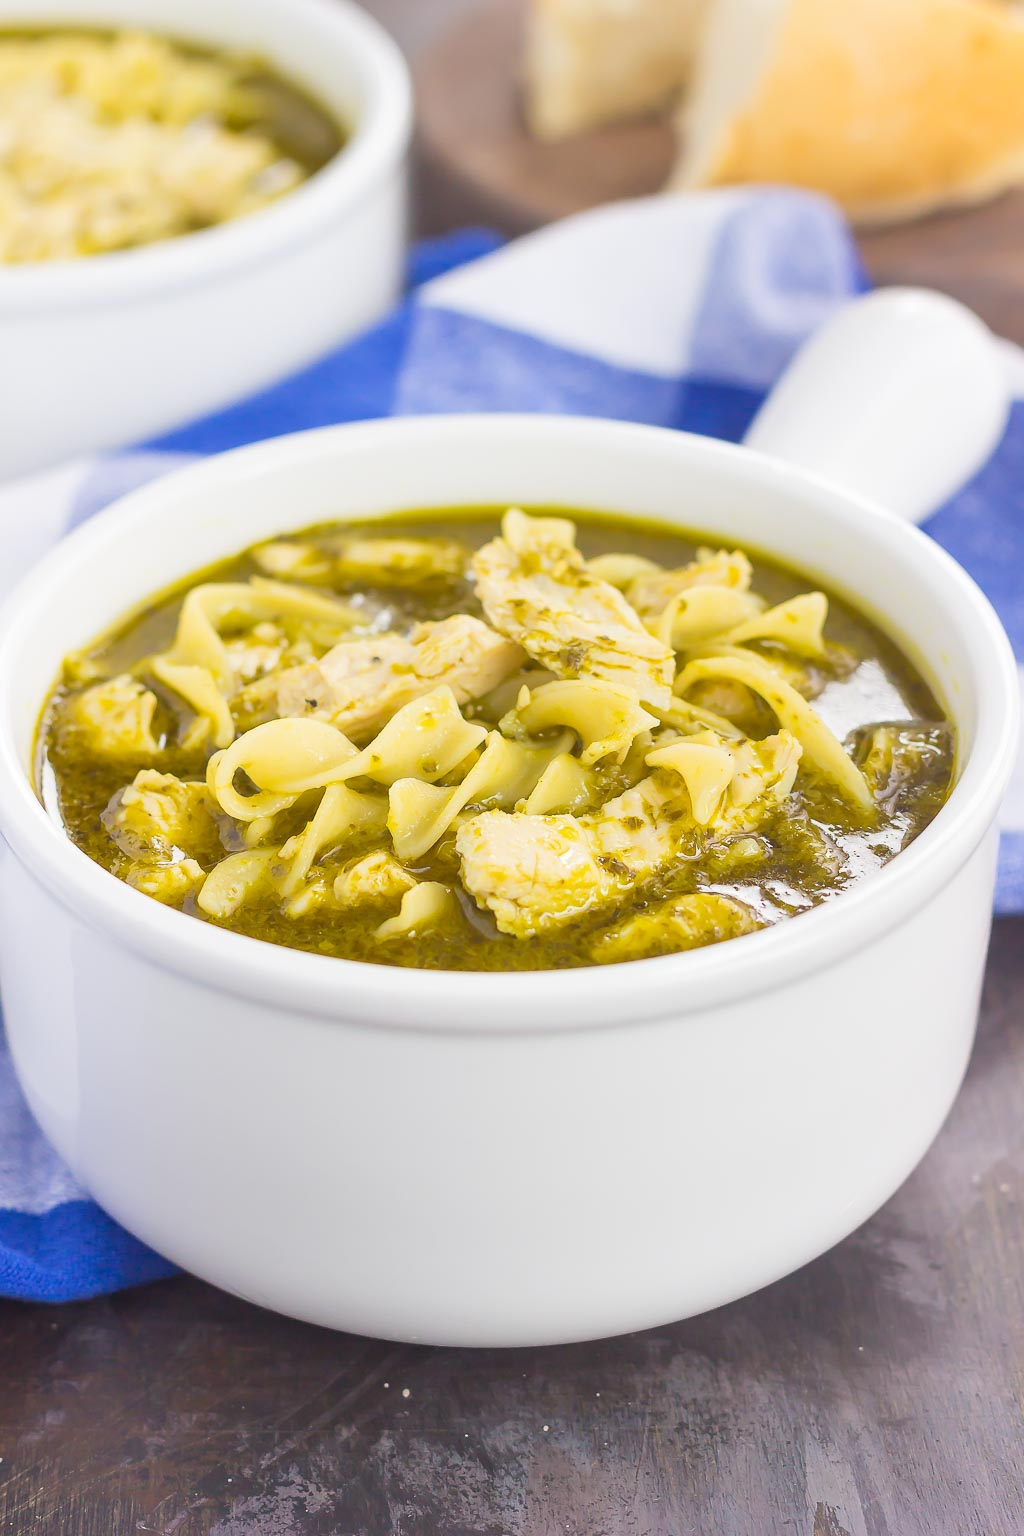 This Pesto Chicken Noodle Soup is made in one pot and ready in just 30 minutes! Filled with rotisserie chicken, tender noodles and enveloped in a simple pesto chicken broth, this easy dish is loaded with flavor and perfect for just about any time!